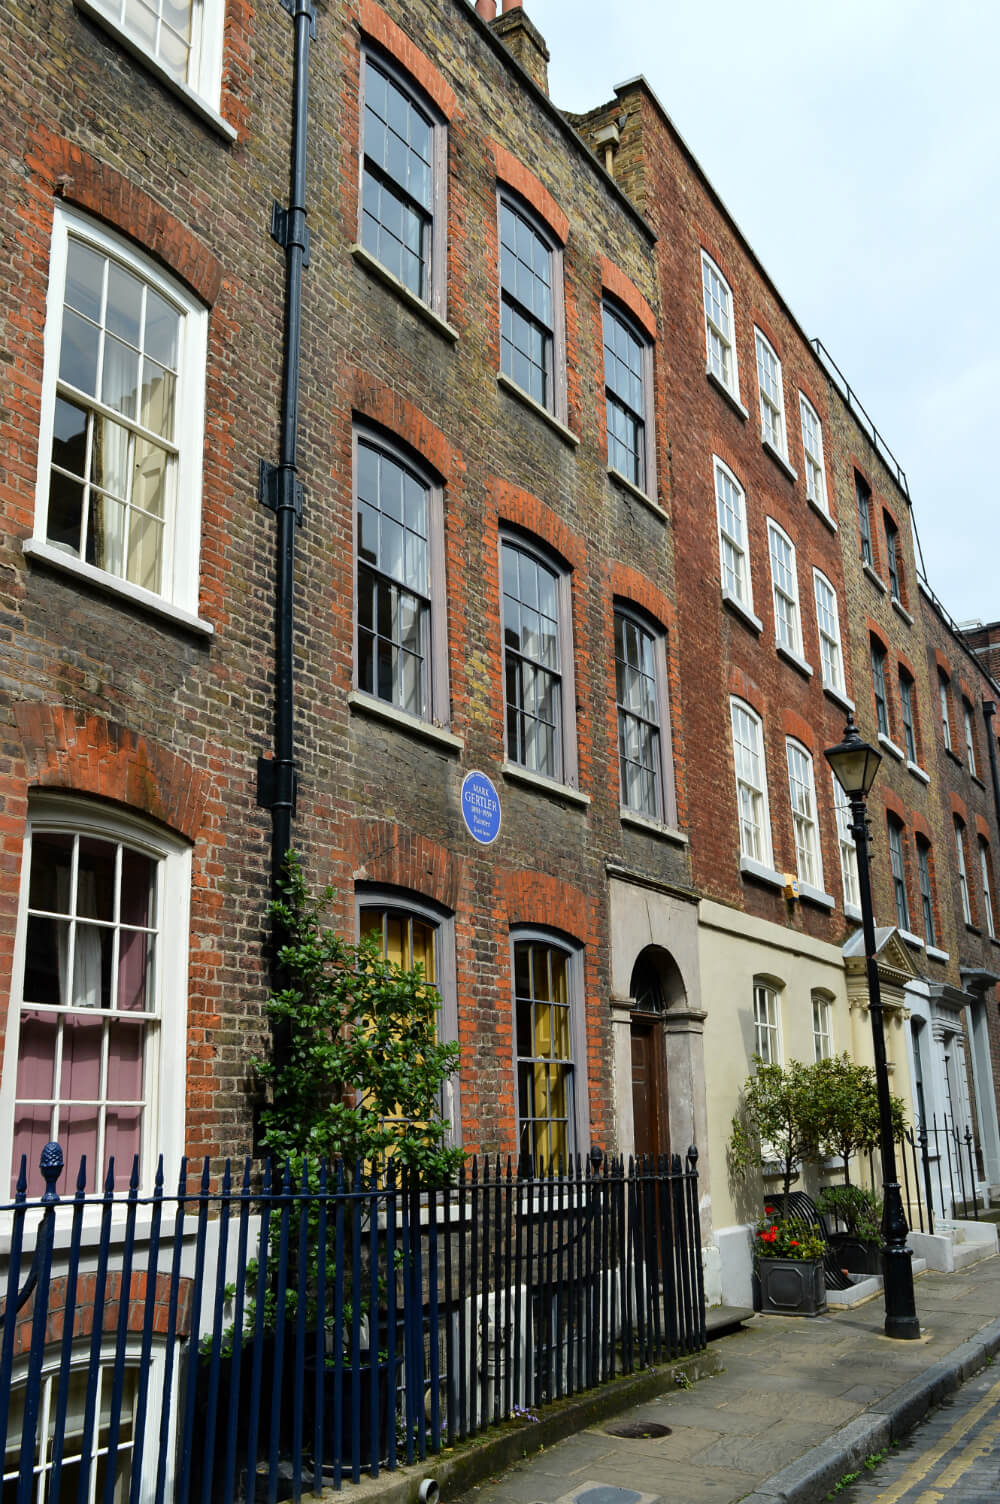 Spitalfields London: The Best Things To Do In Shoreditch And Spitalfields